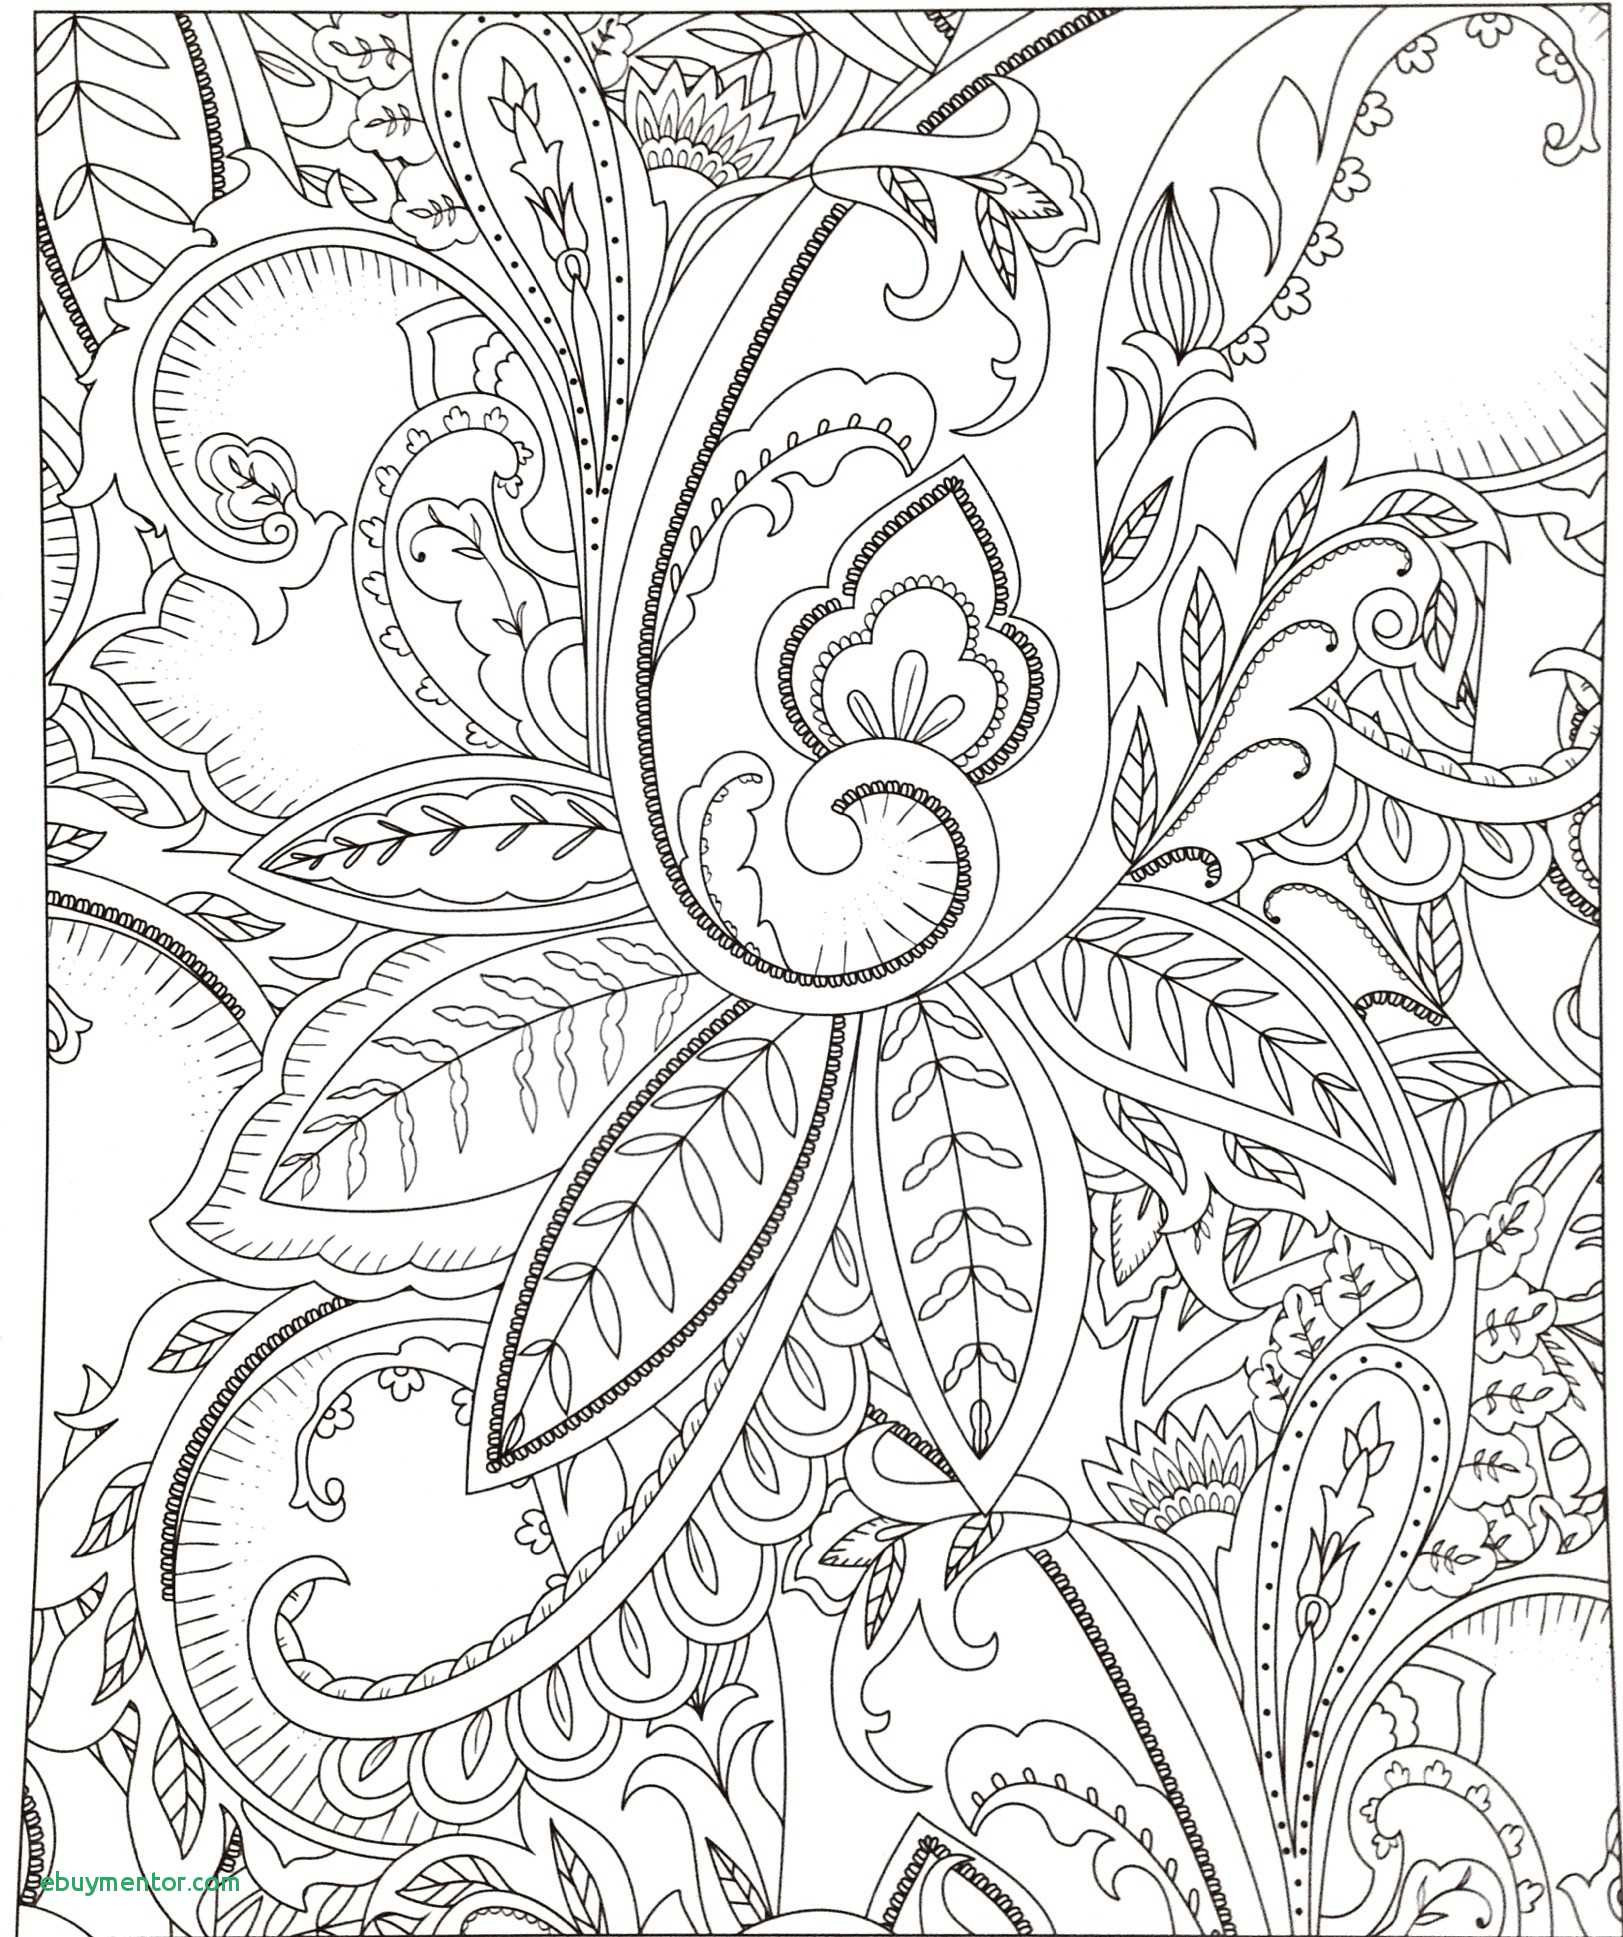 Big Mandala Coloring Pages  to Print 13m - To print for your project